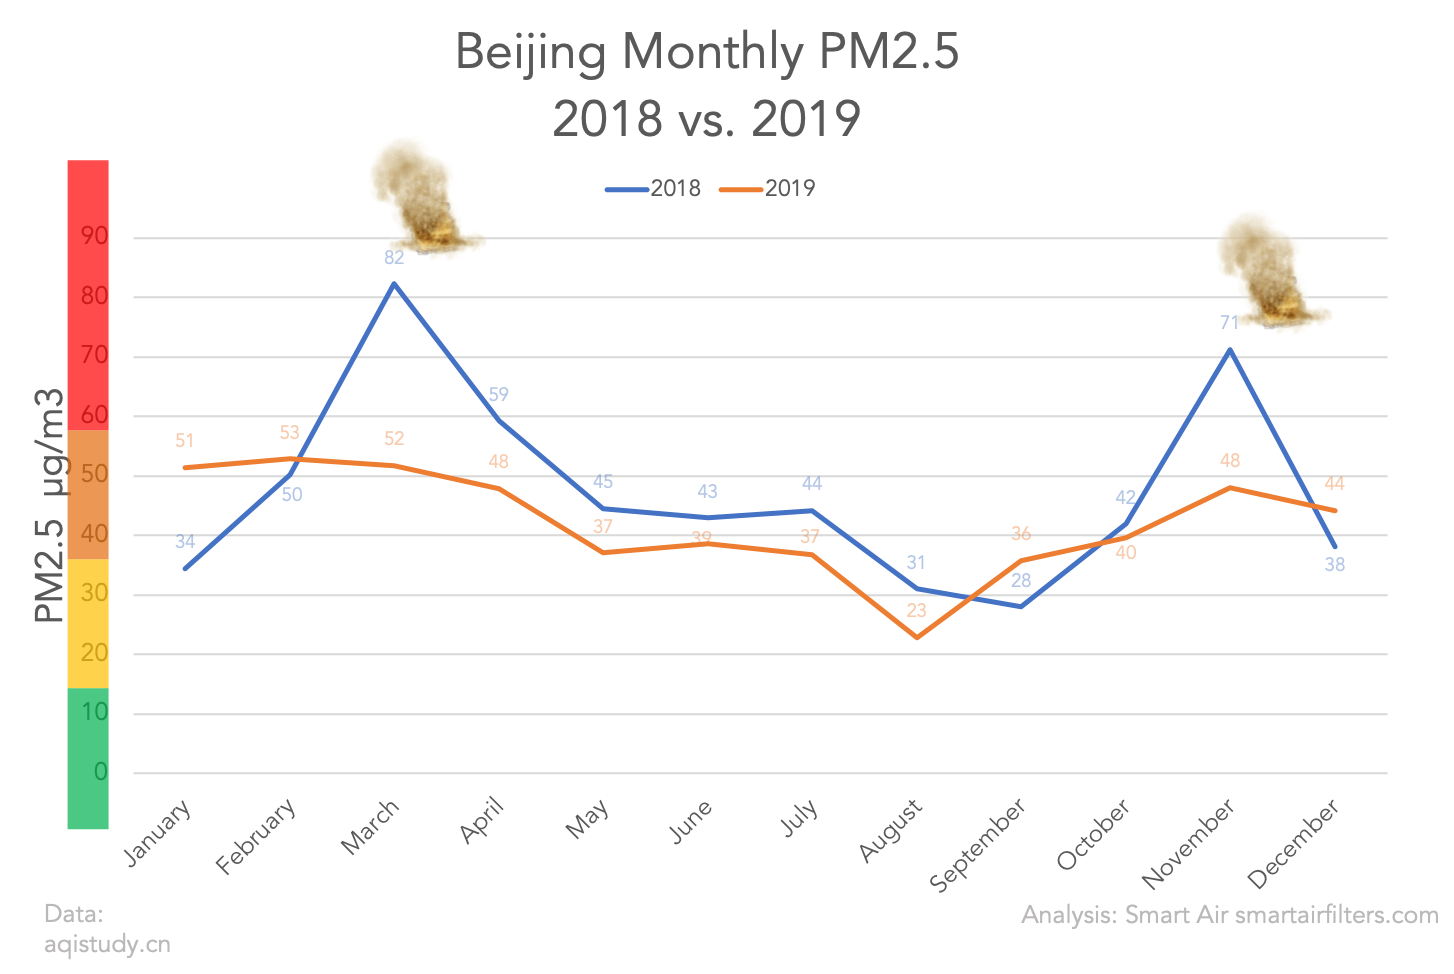 The average monthly PM2.5 in Beijing in 2018 and 2019